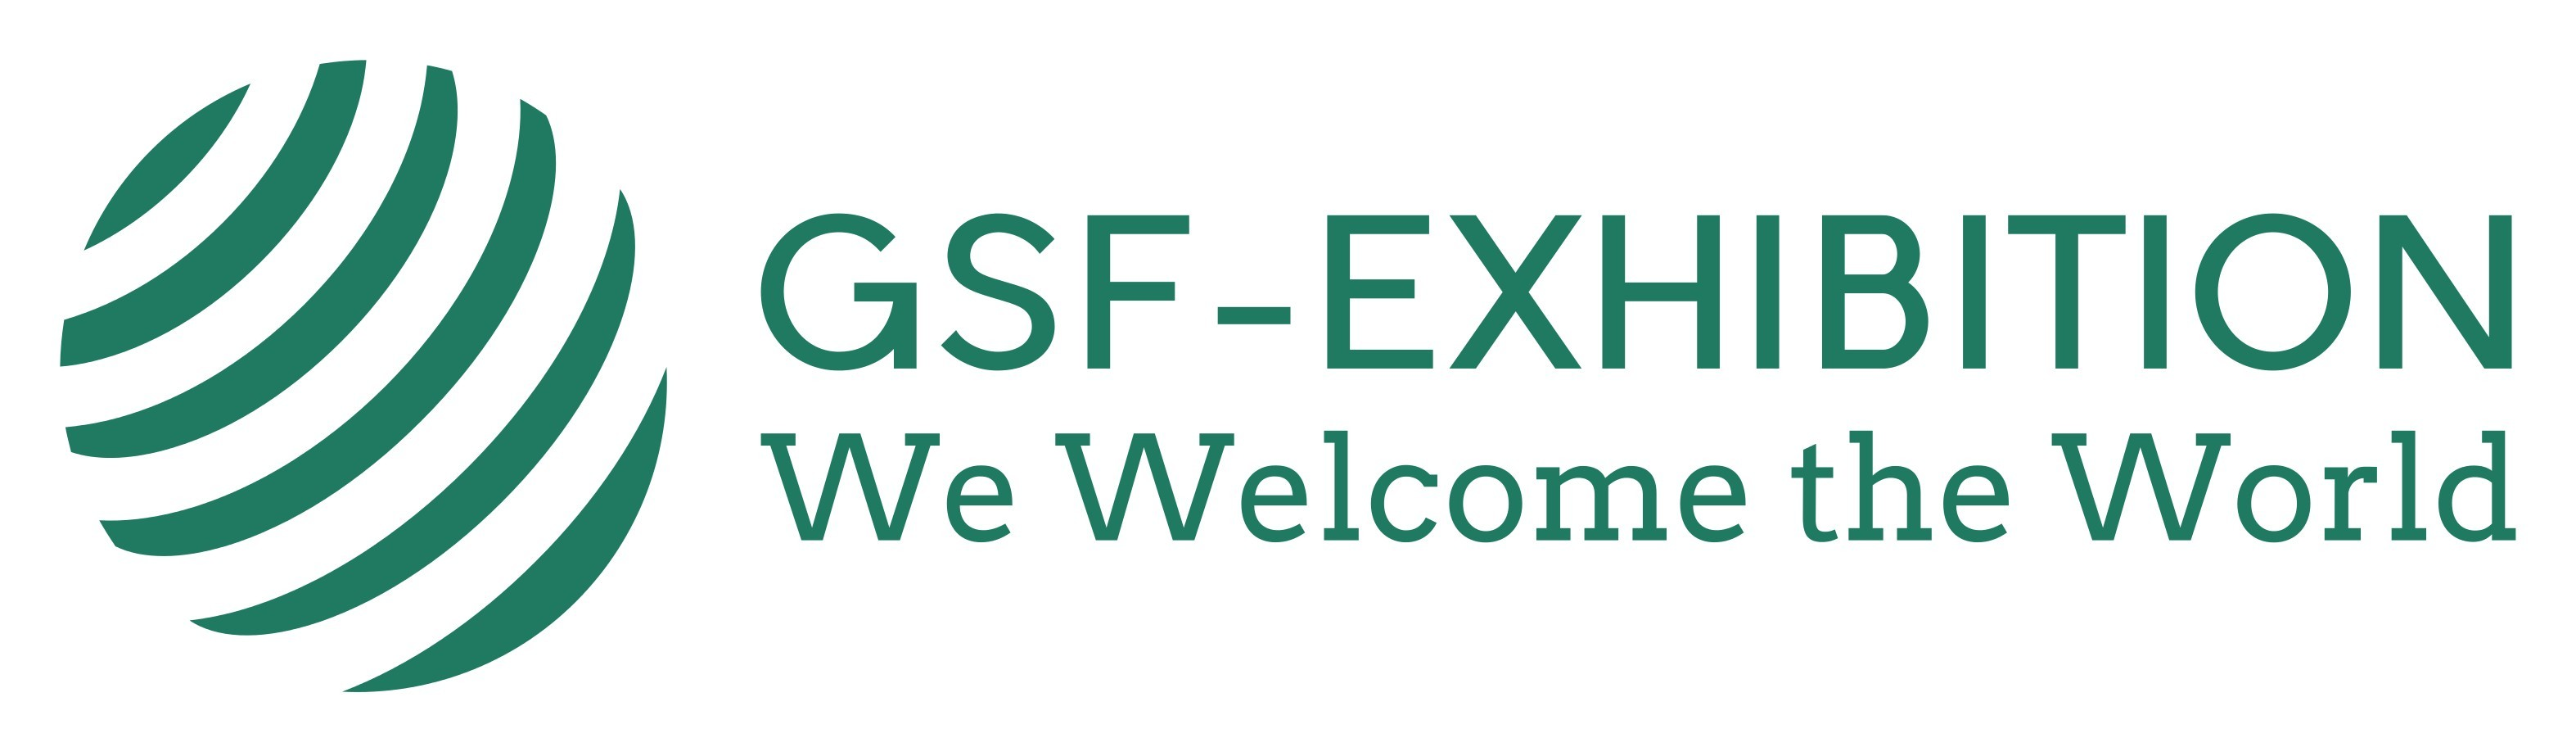 Gsf Exhibition